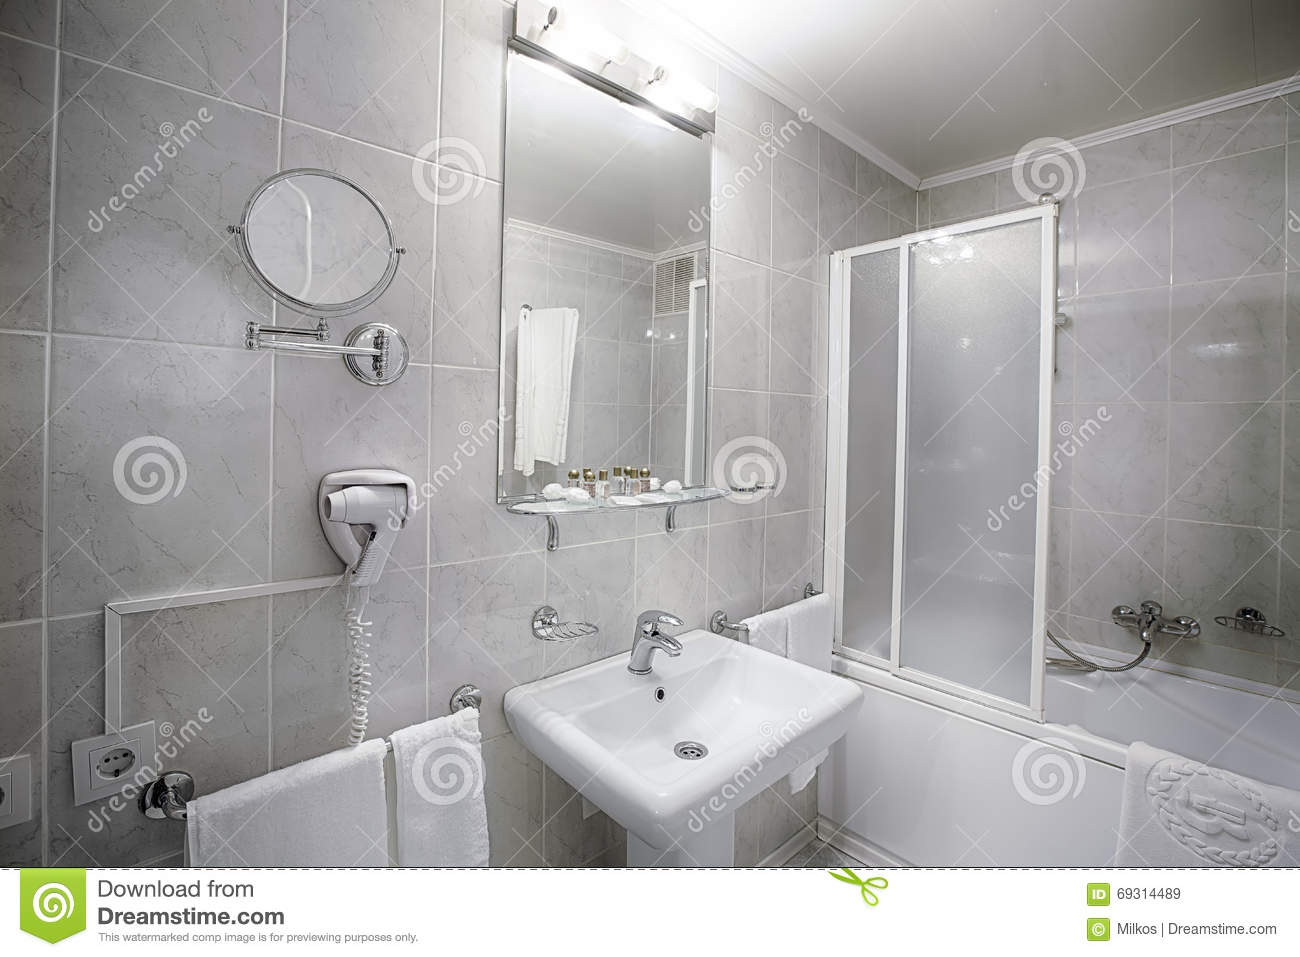 Royalty-Free Stock Photo. Download Interior Of A Modern Hotel Bathroom.